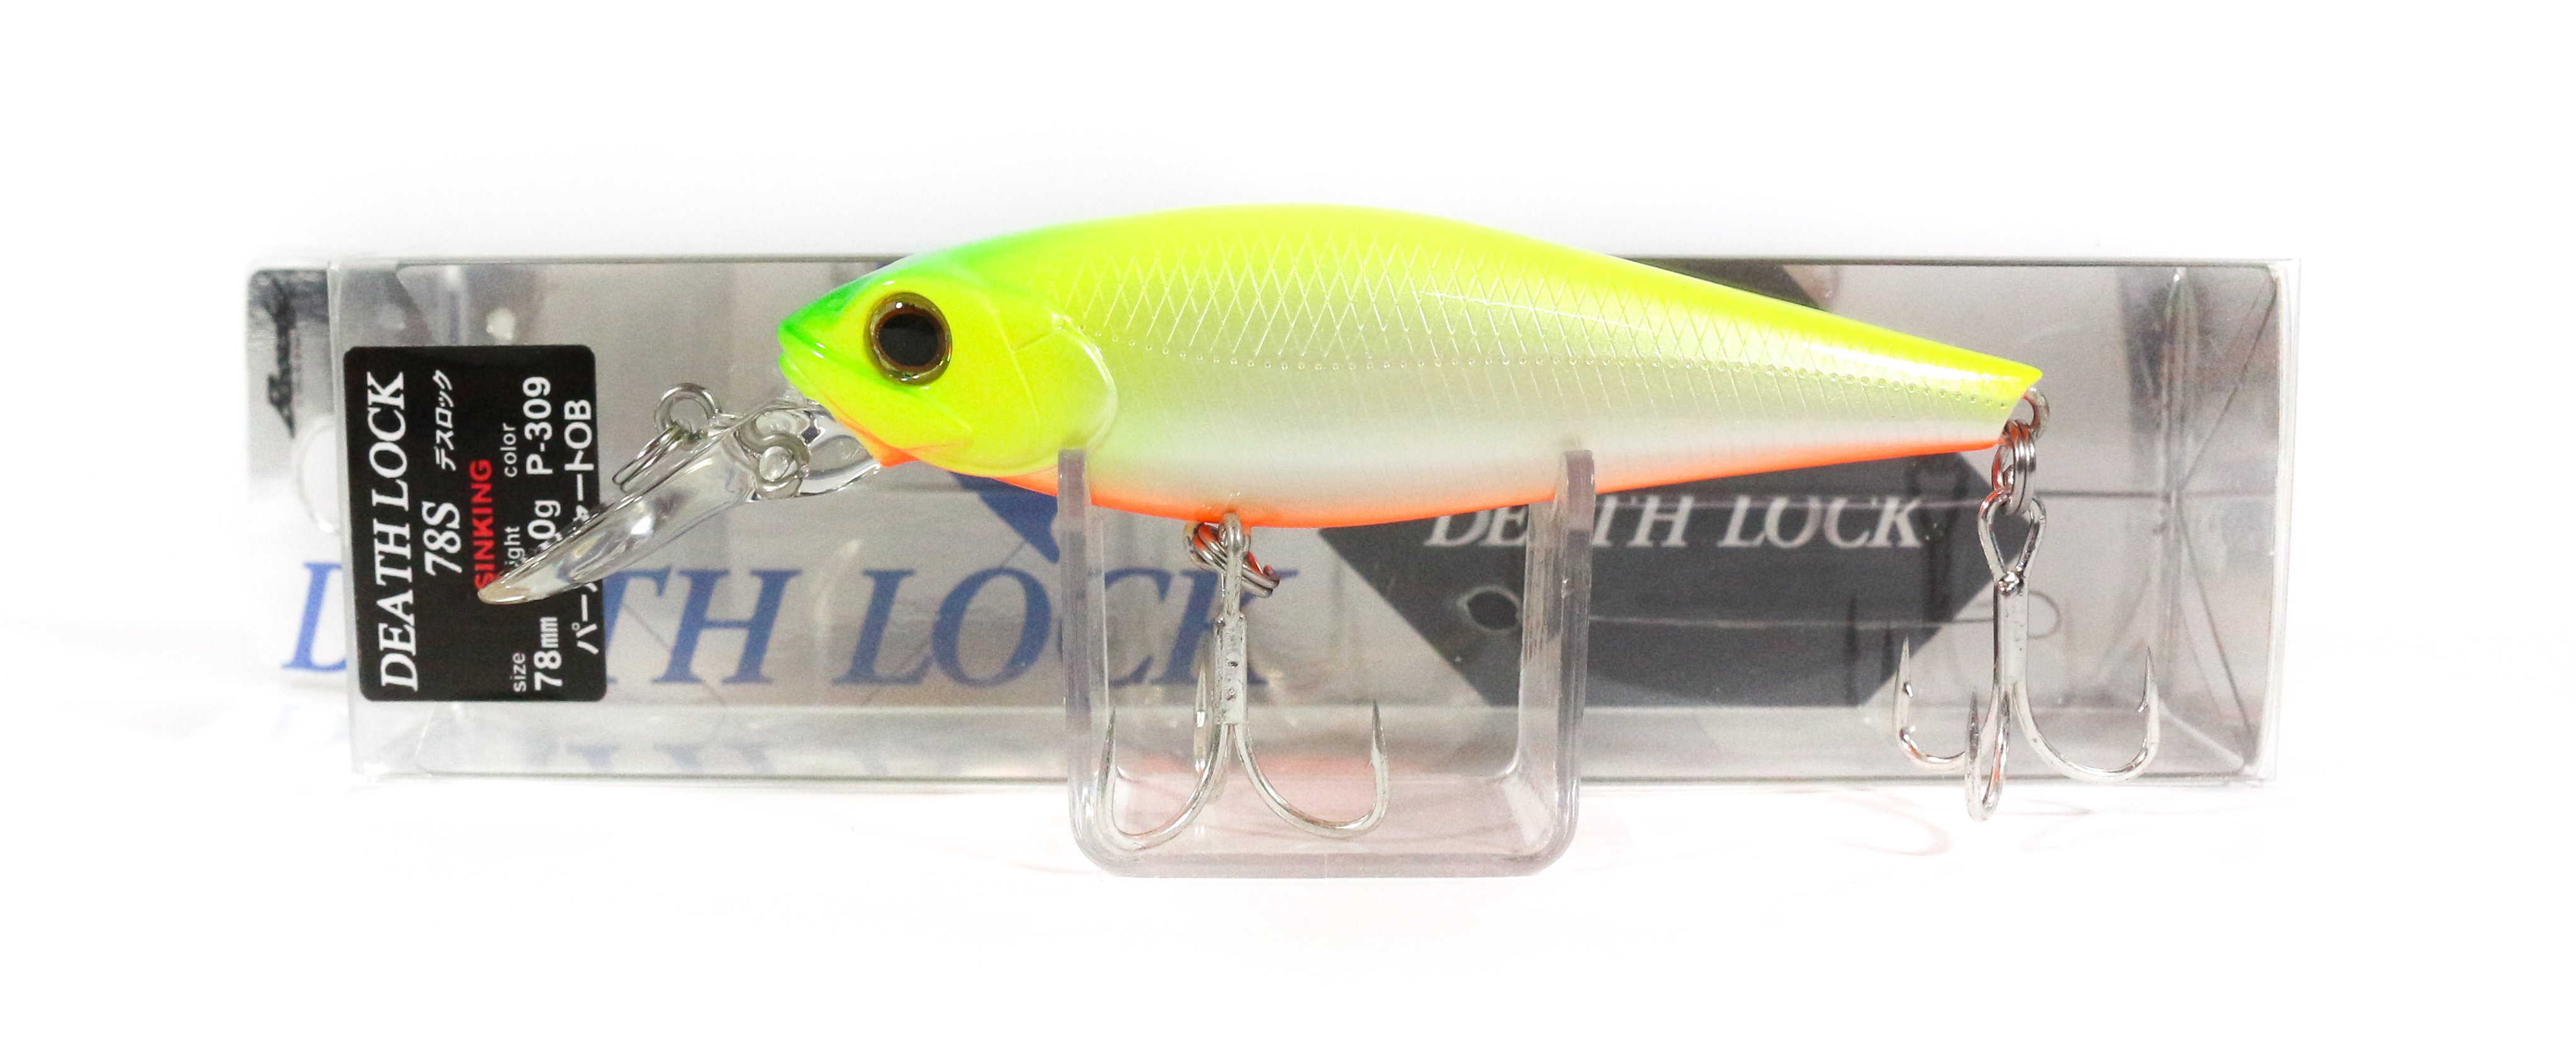 Bassday Death Lock 78S Sinking Minnow Lure P-309 (1243)